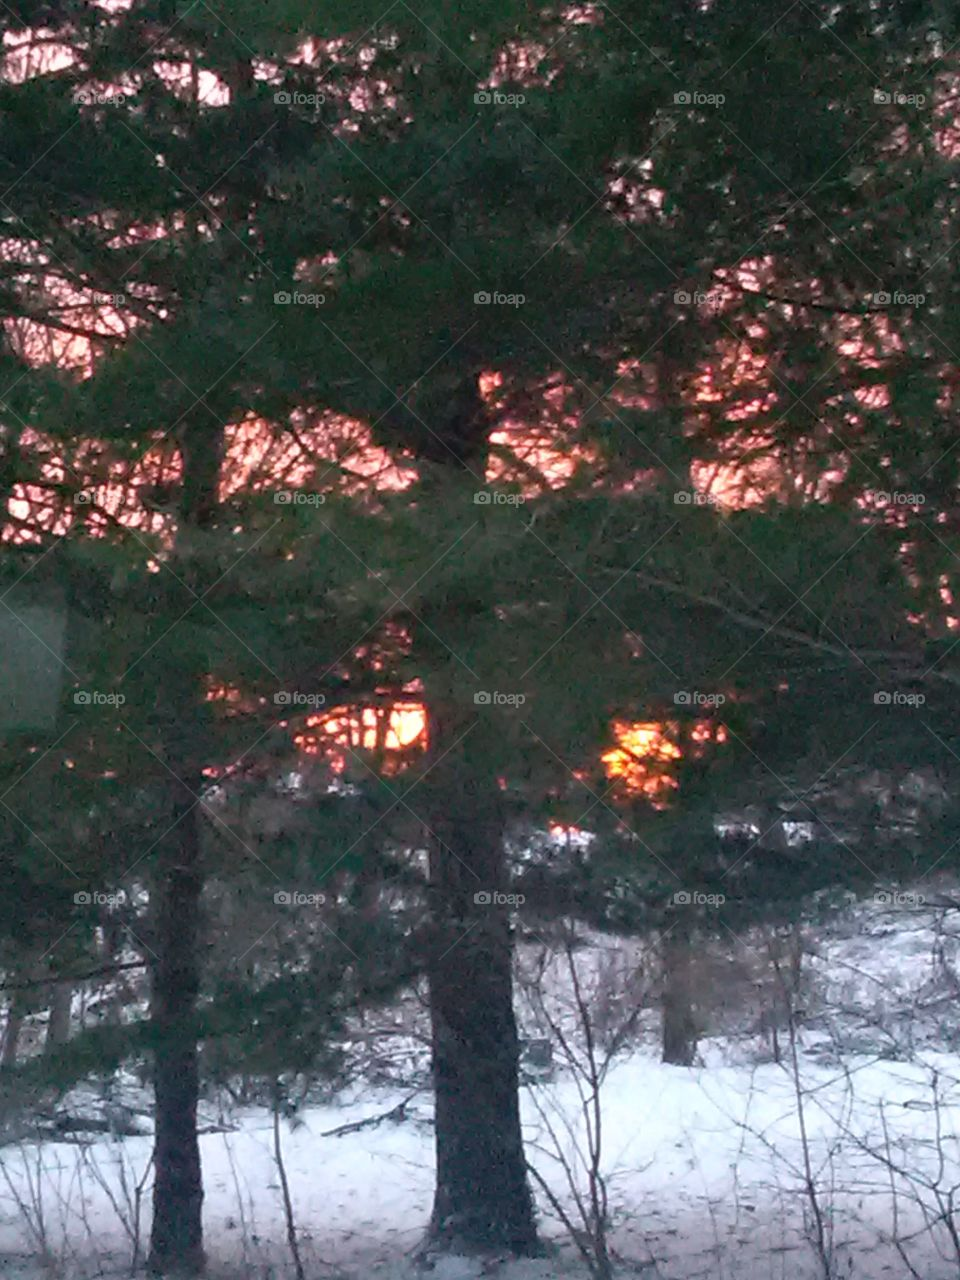 Sunrise through the pines